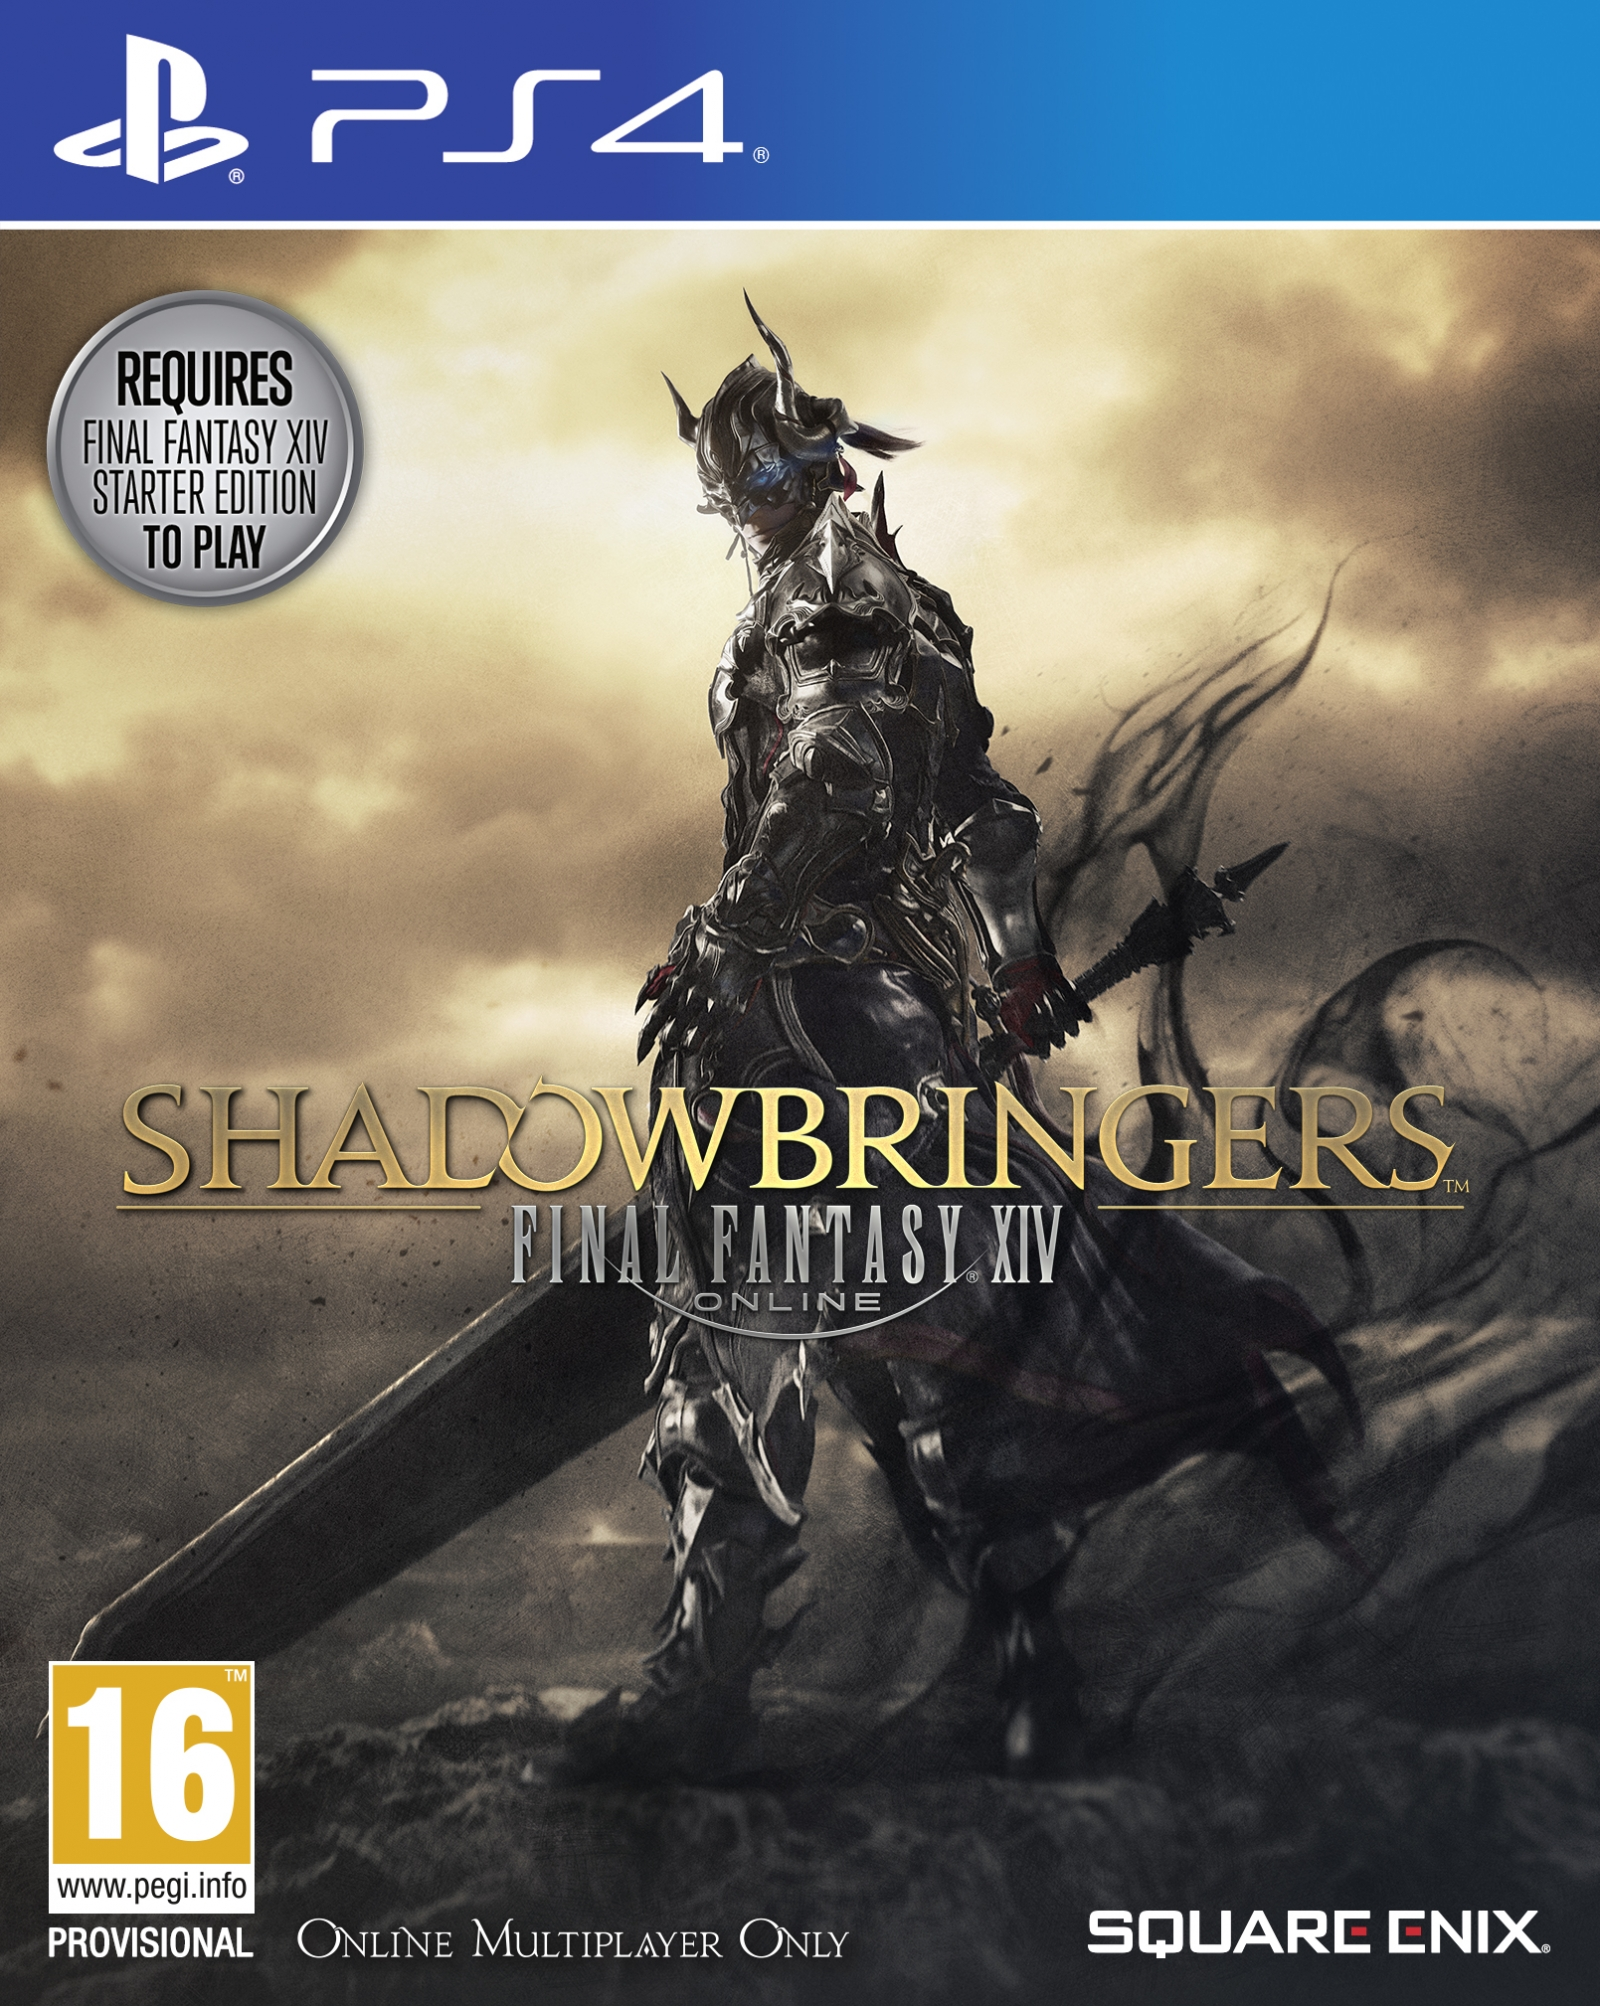 PS4 Final Fantasy XIV: Shadowbringers